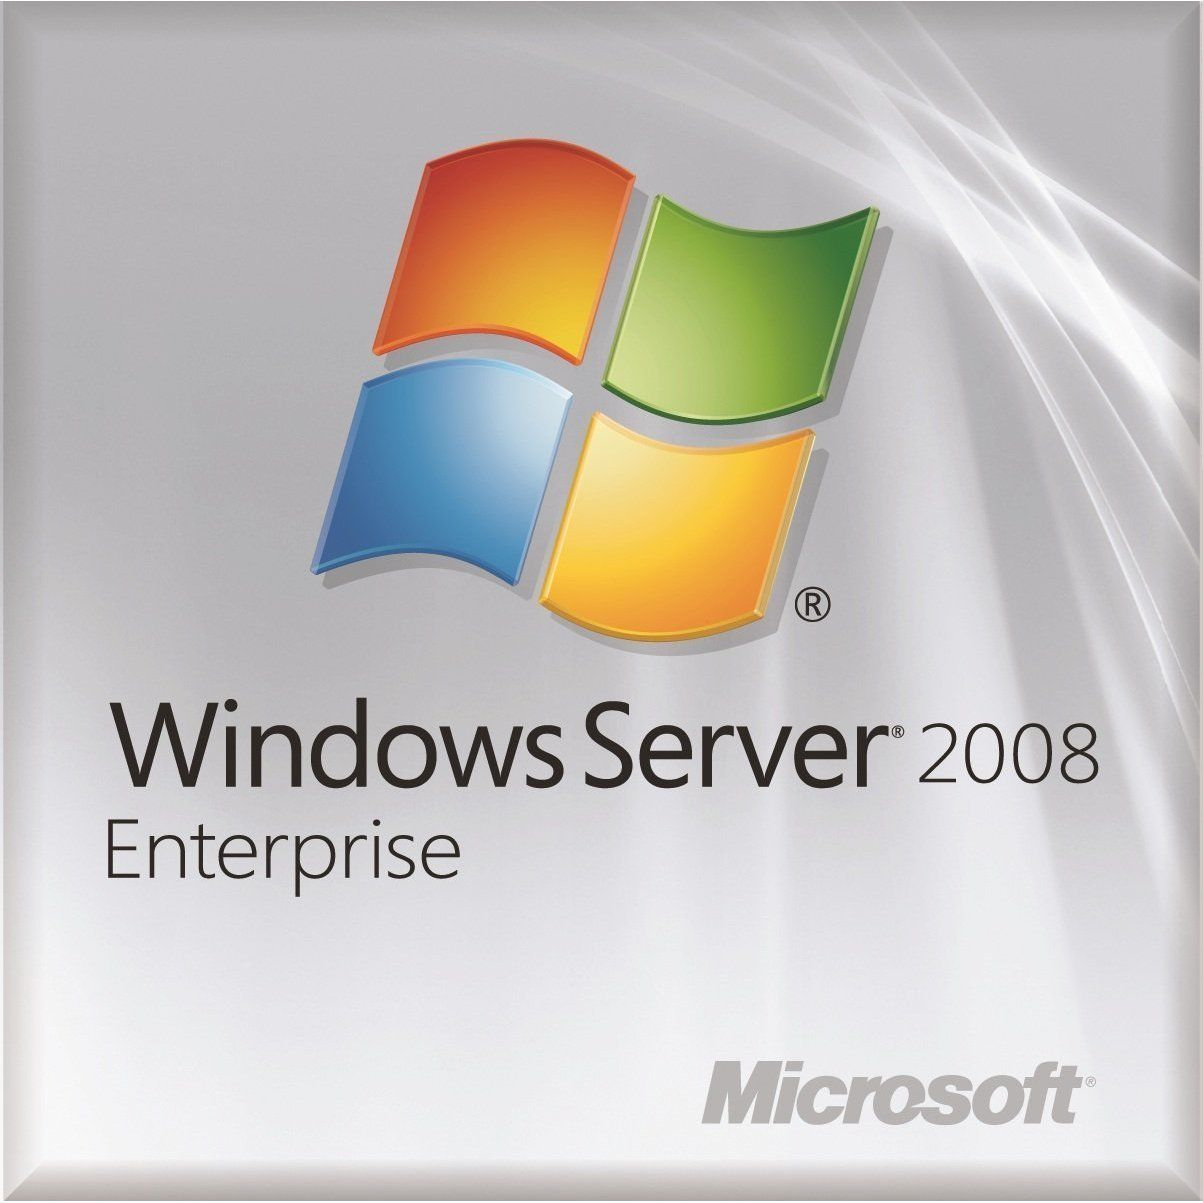 Windows Server 2008 R2 Software On Perfection Jain